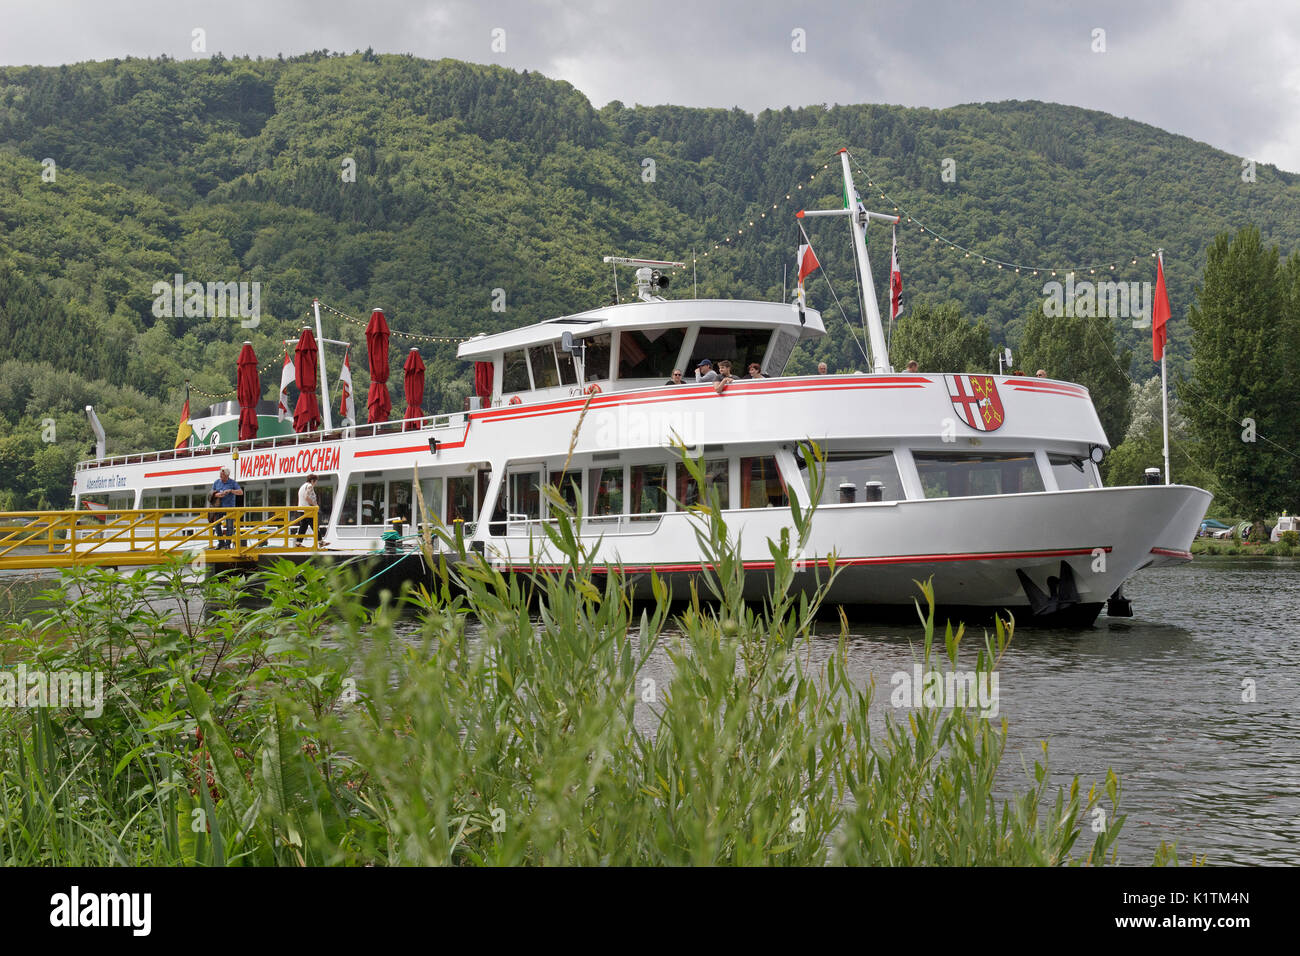 excursion boat, Beilstein, Moselle, Rhineland-Palatinate, Germany - Stock Image